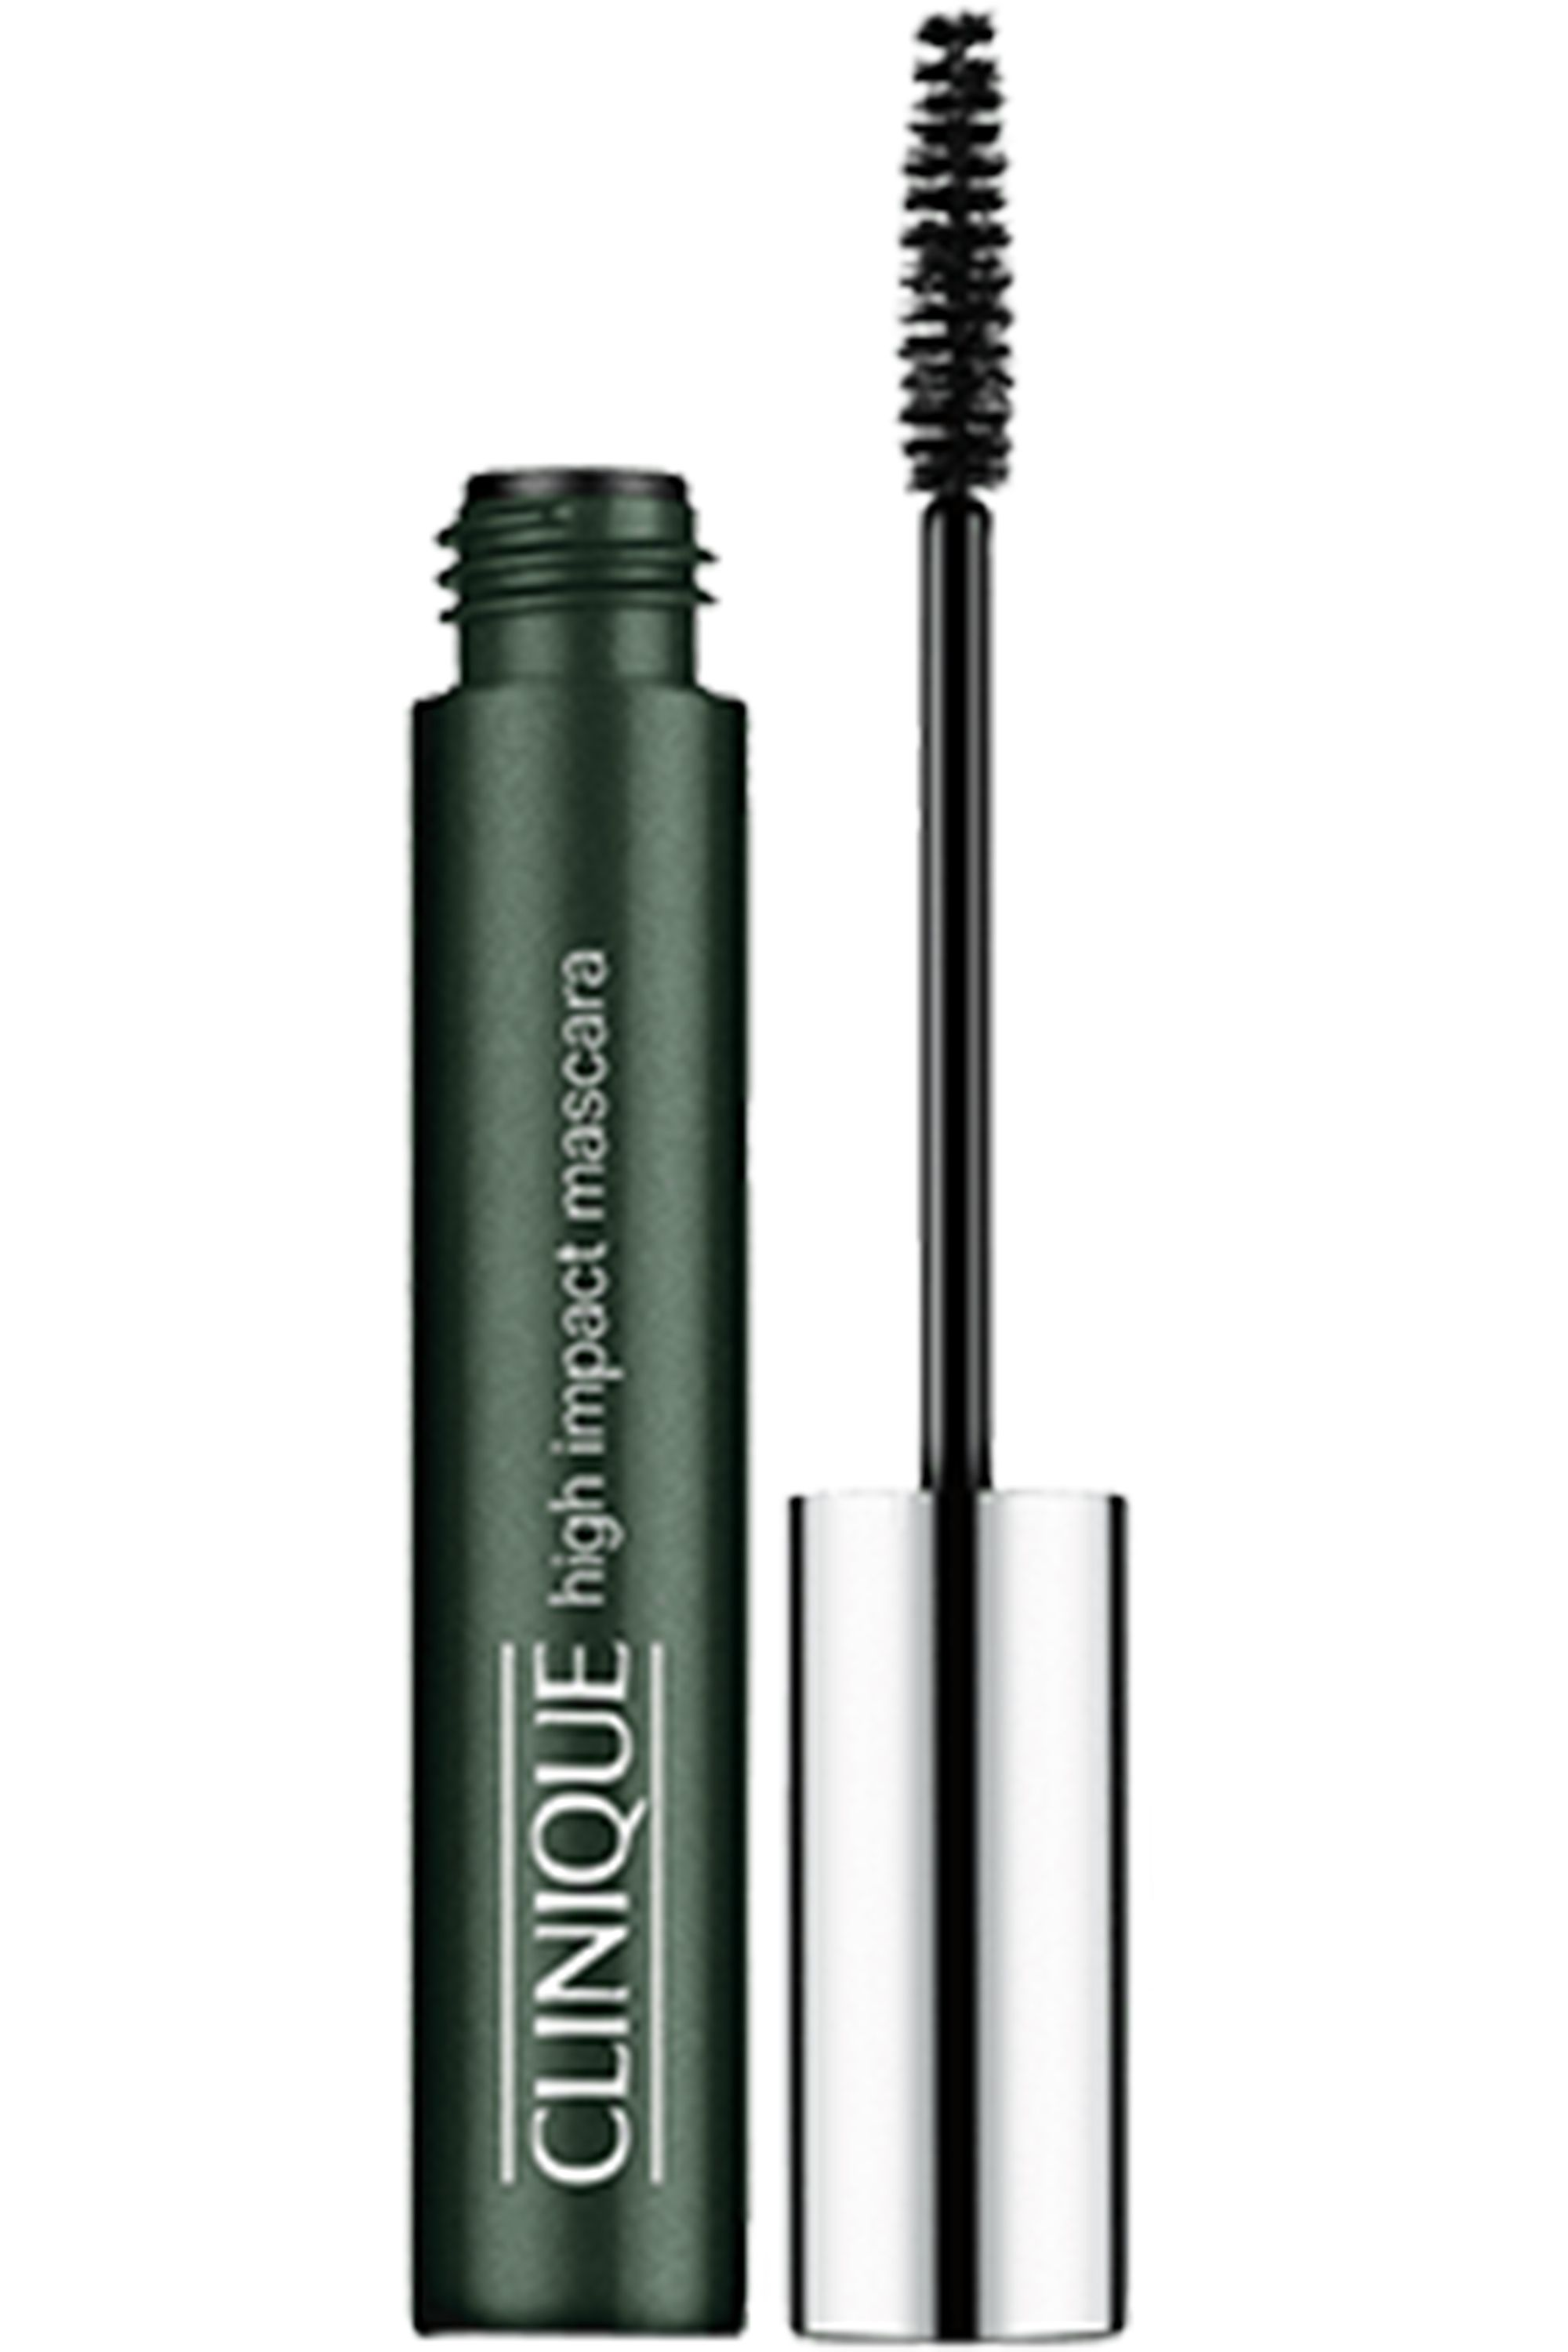 Blissim : Clinique - Mascara volumateur High Impact Mascara™ - Mascara volumateur High Impact Mascara™